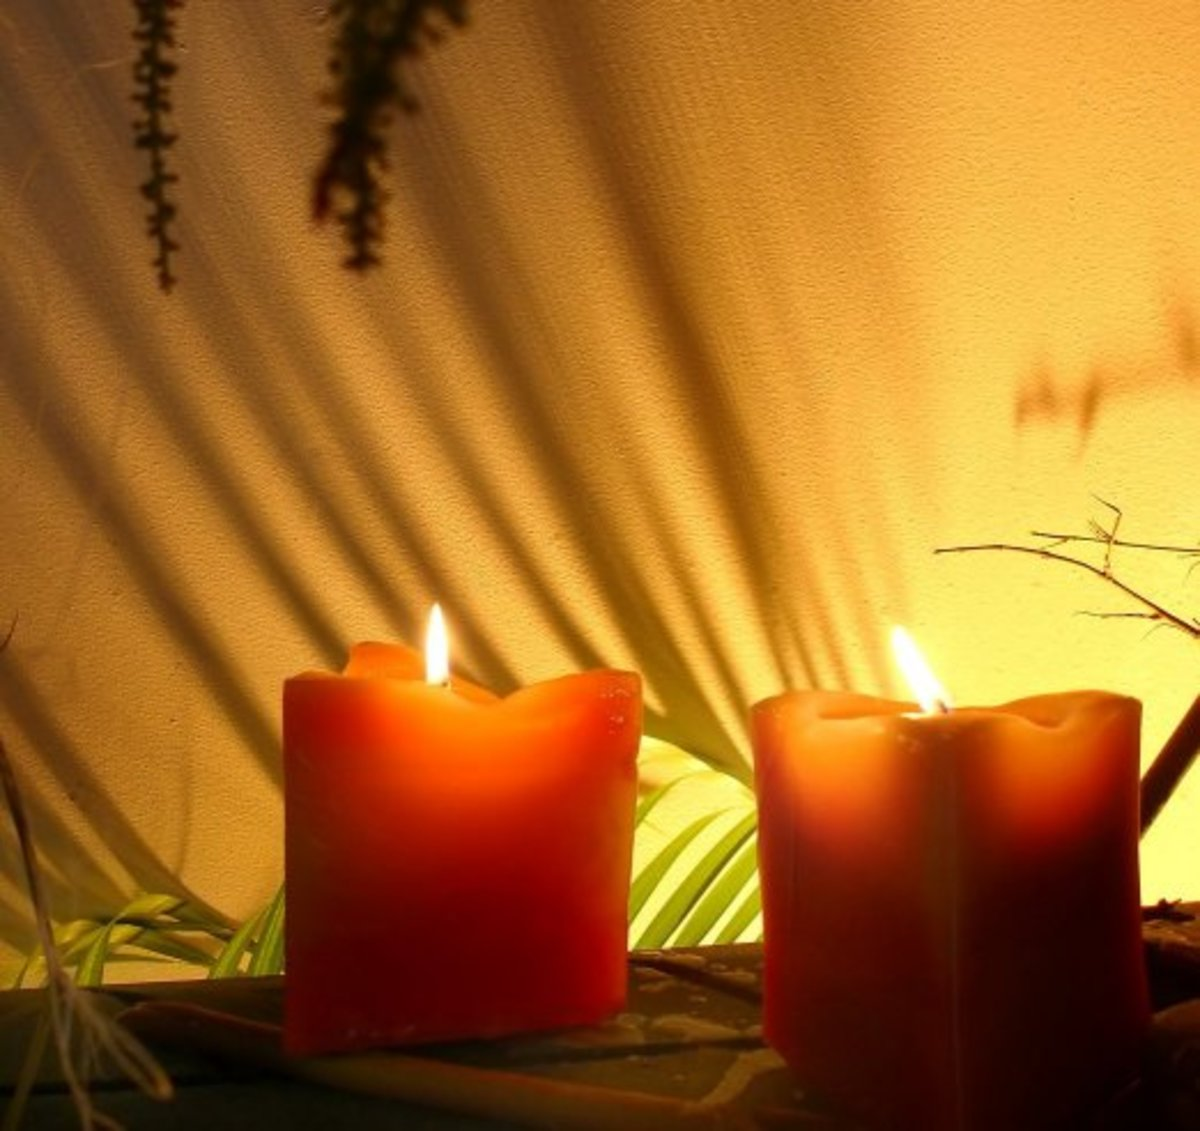 You can add a special touch even to your 5 minute massage by lighting a few candles in the room to make the ambience soothing and relaxing.